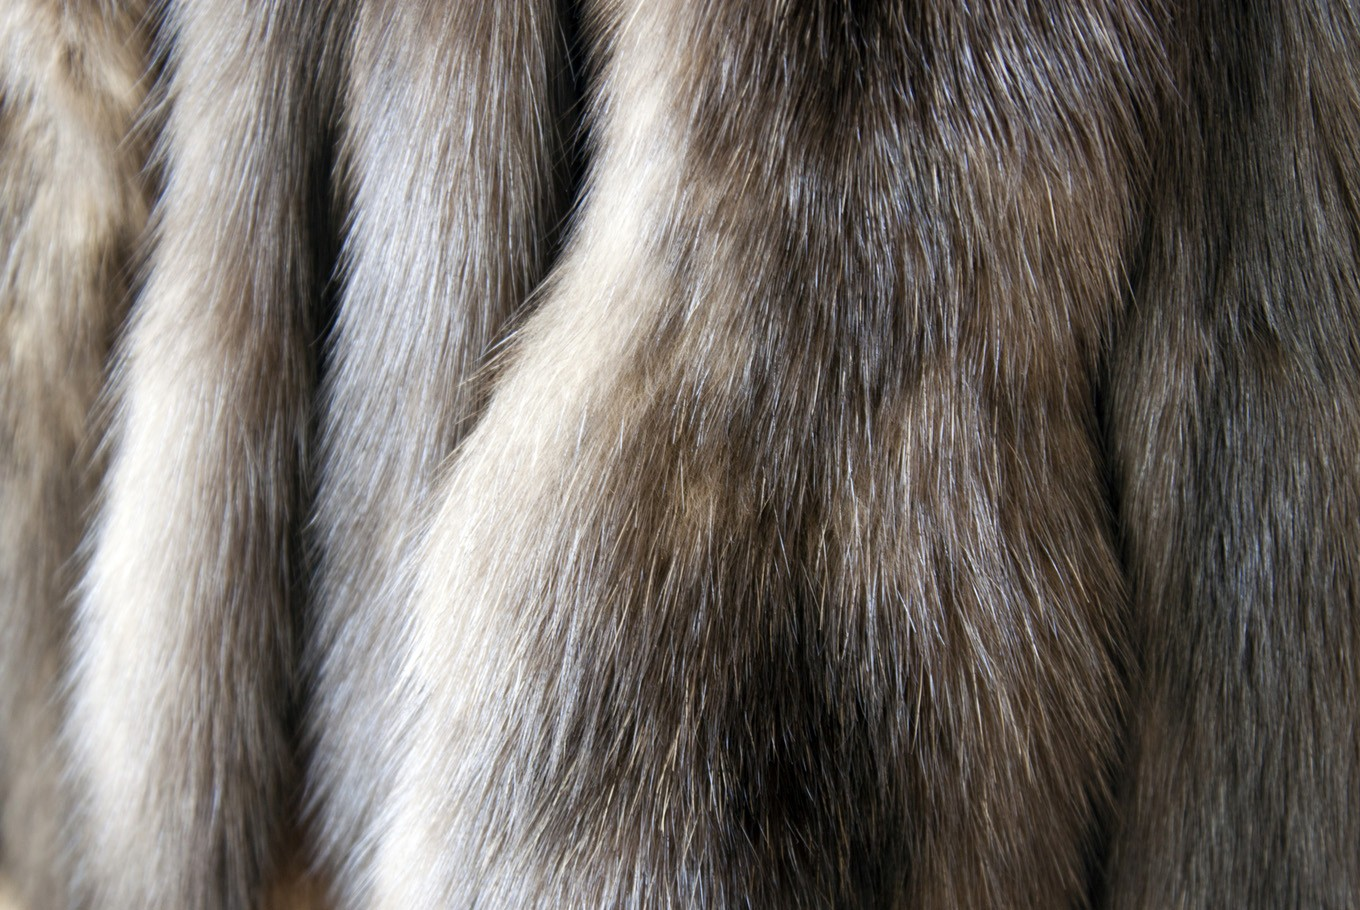 Real fur products marketed as fake in UK: Reports